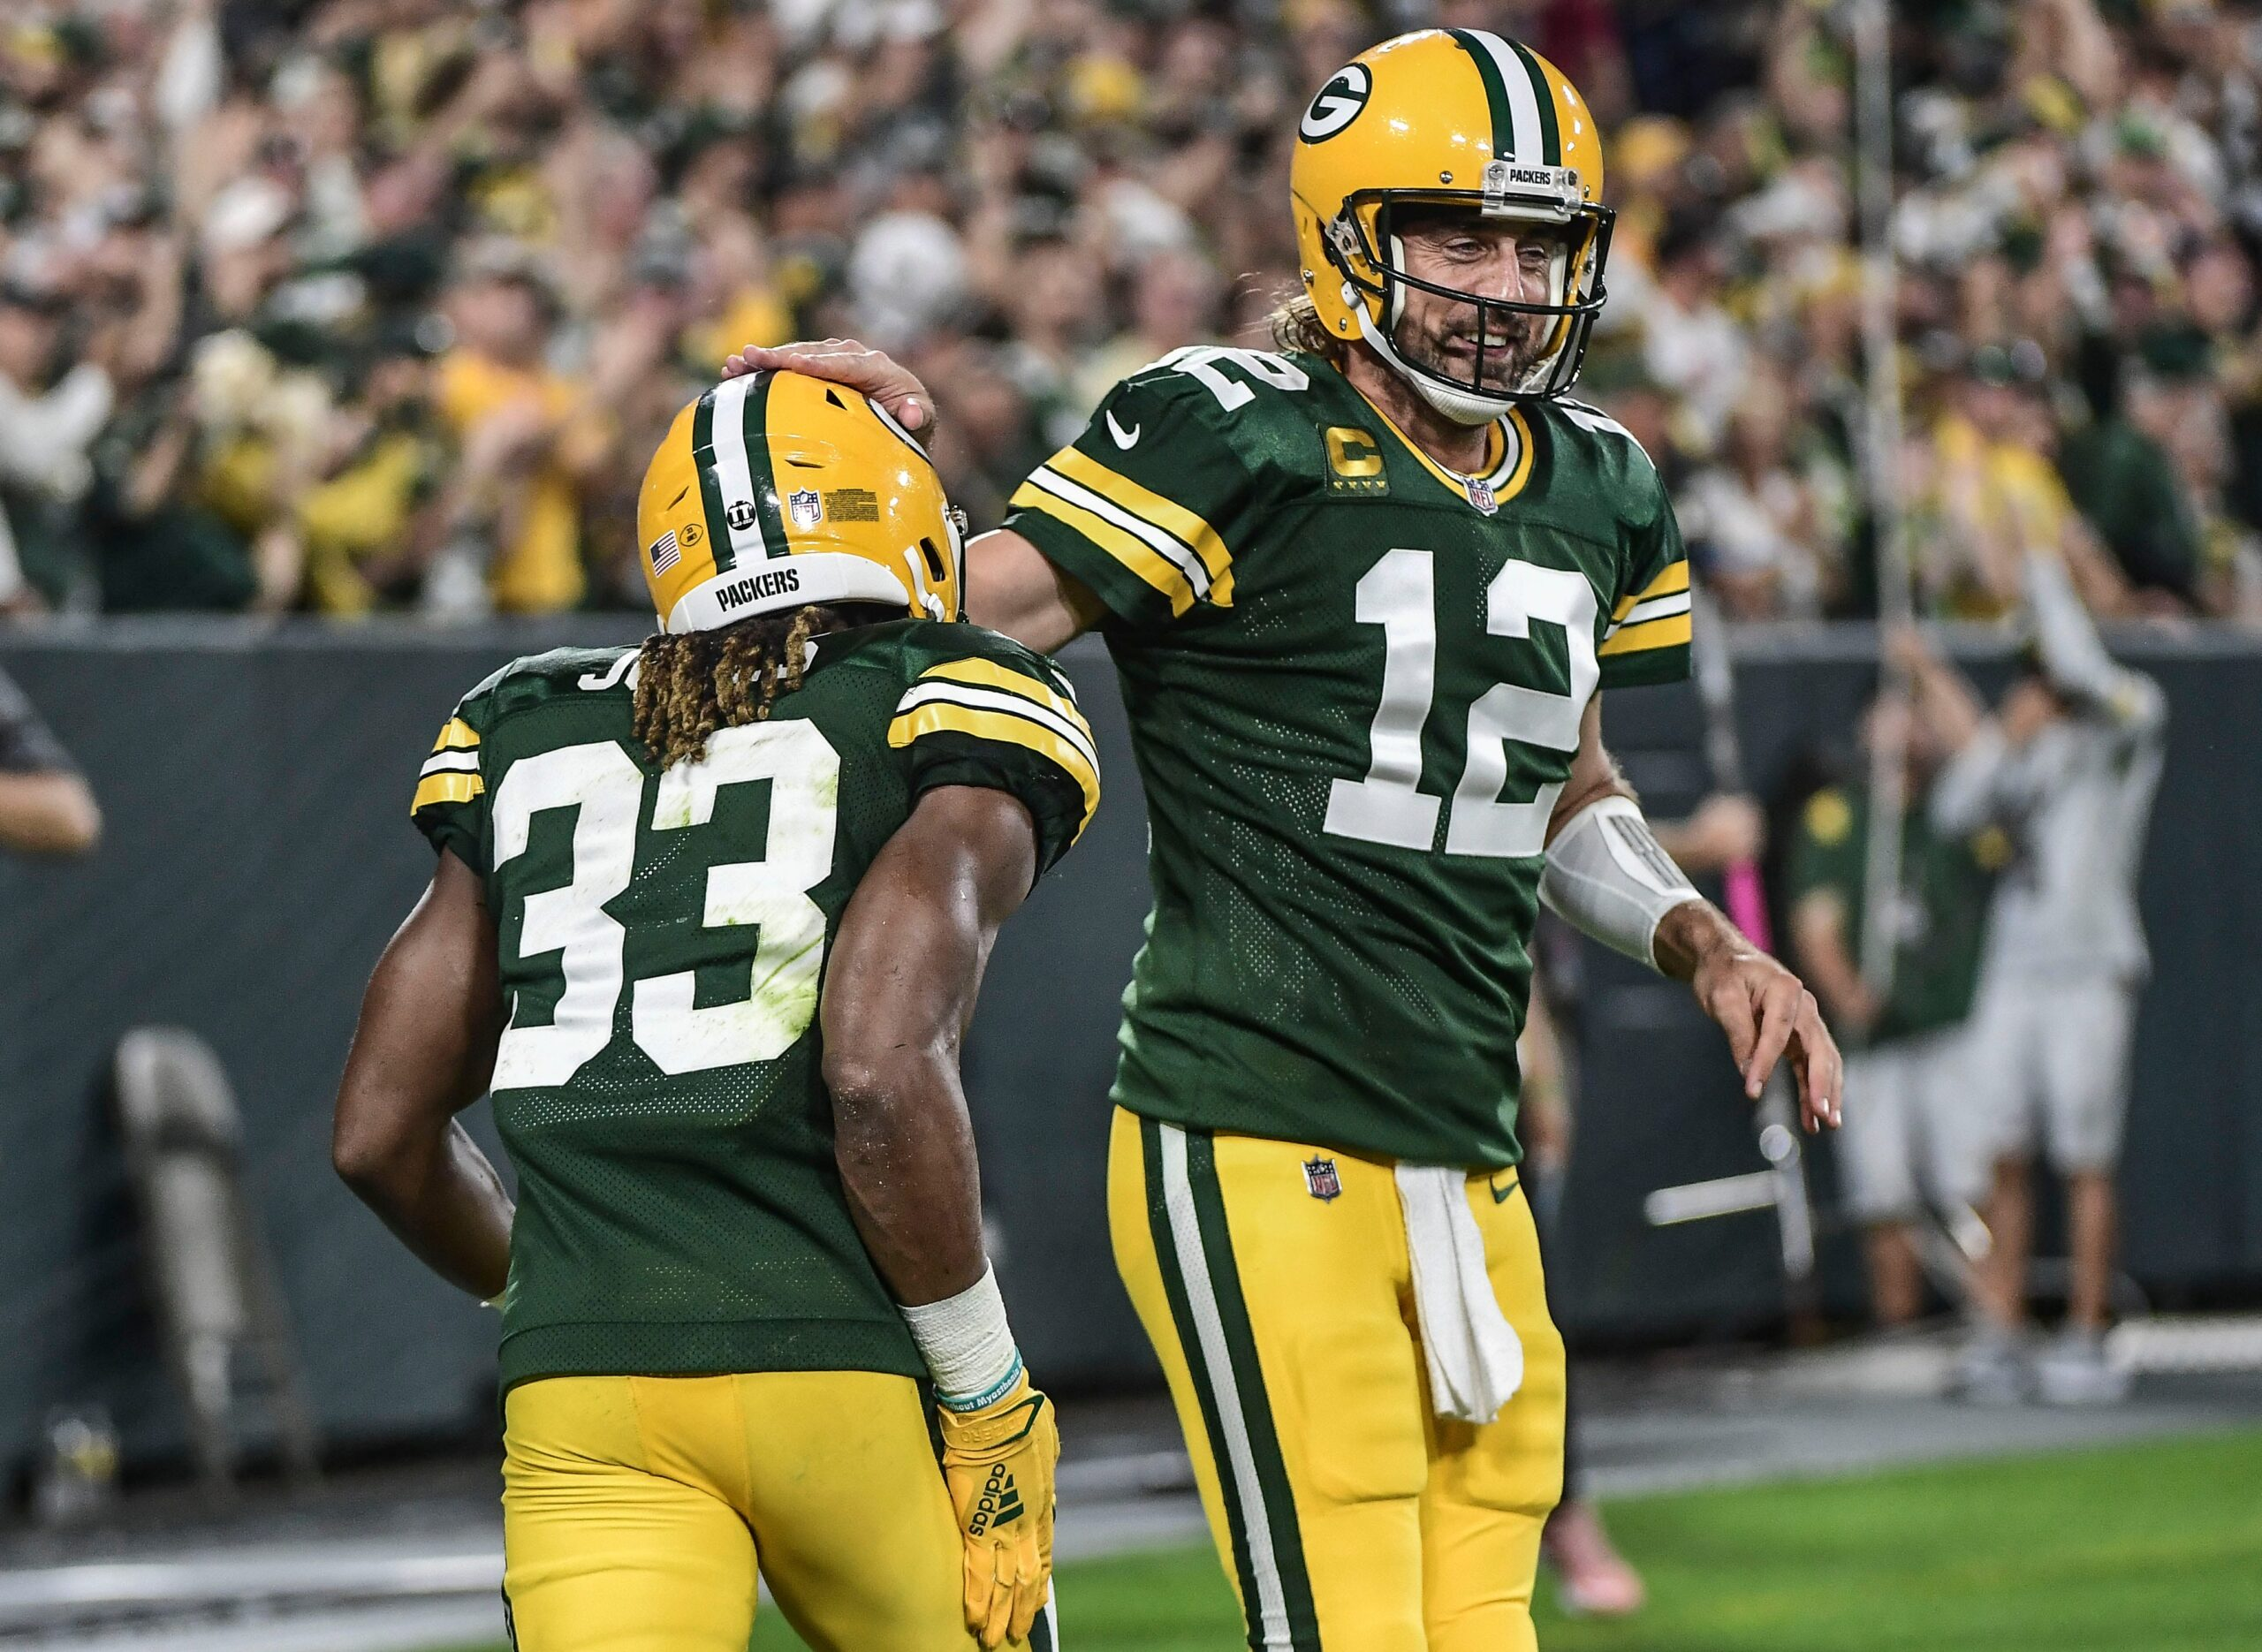 Packers QB Aaron Rodgers back to throwing in-rhythm